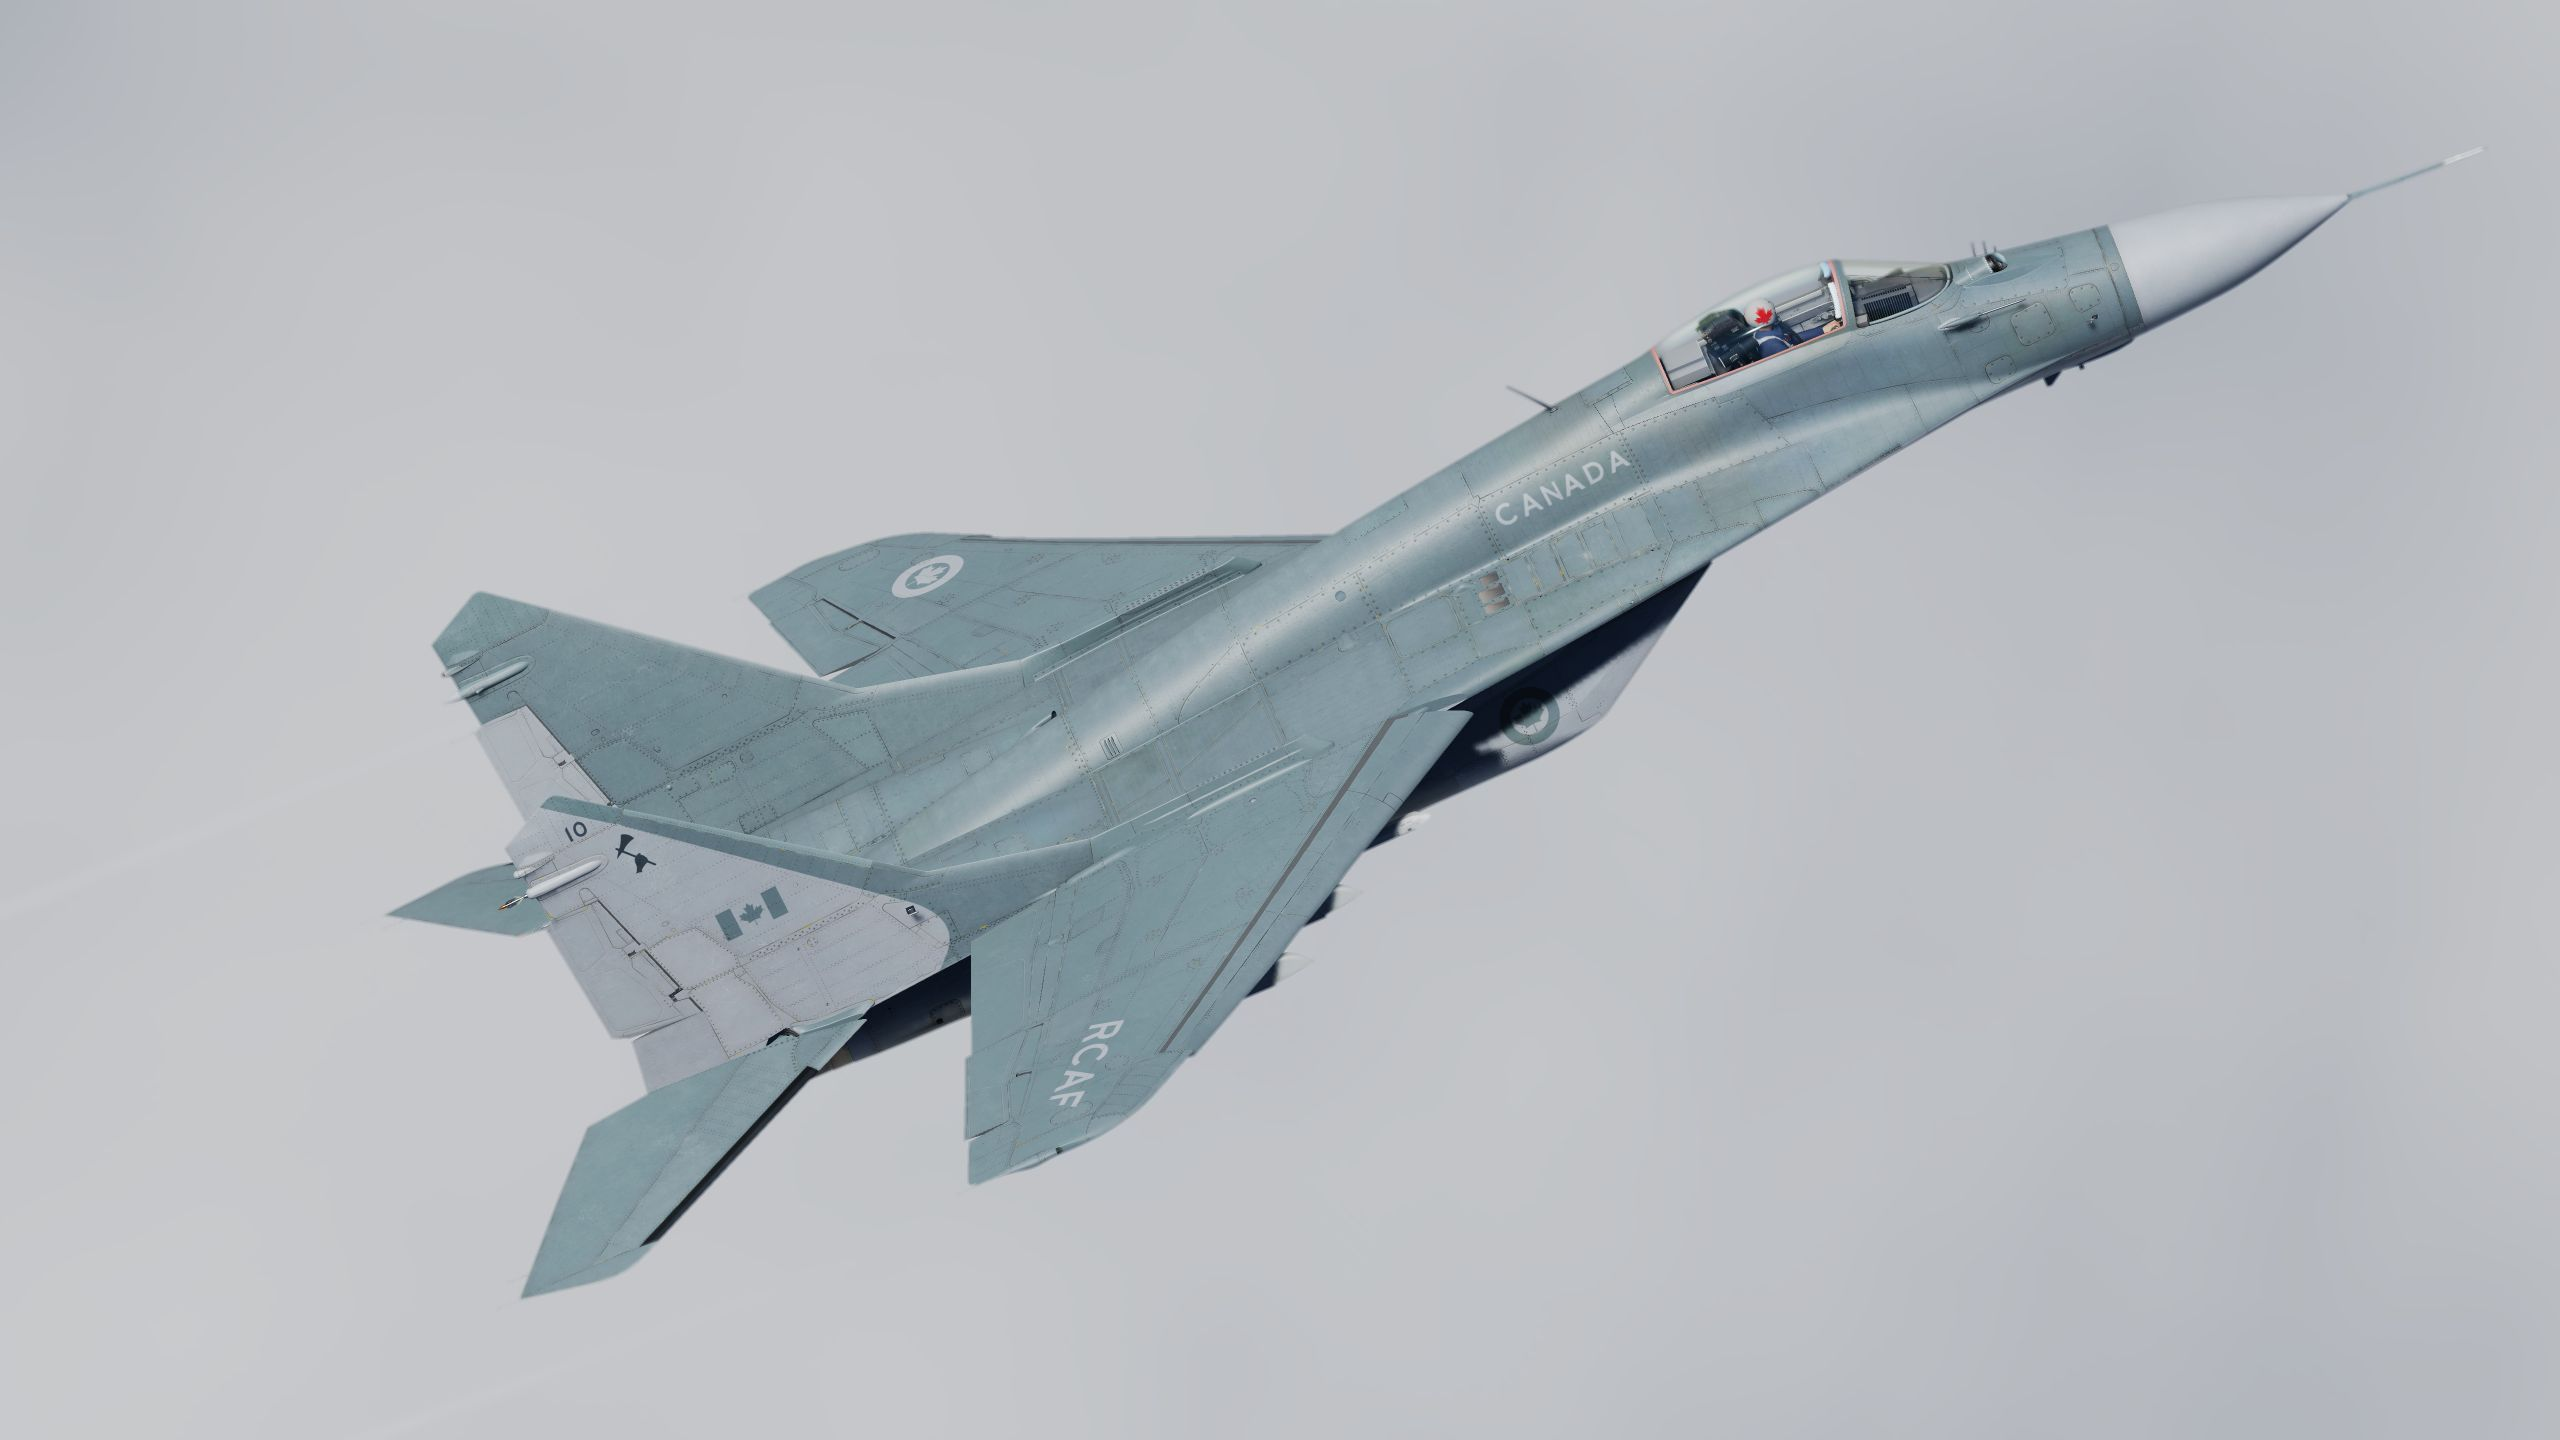 Canadian Air Force MiG-29 S